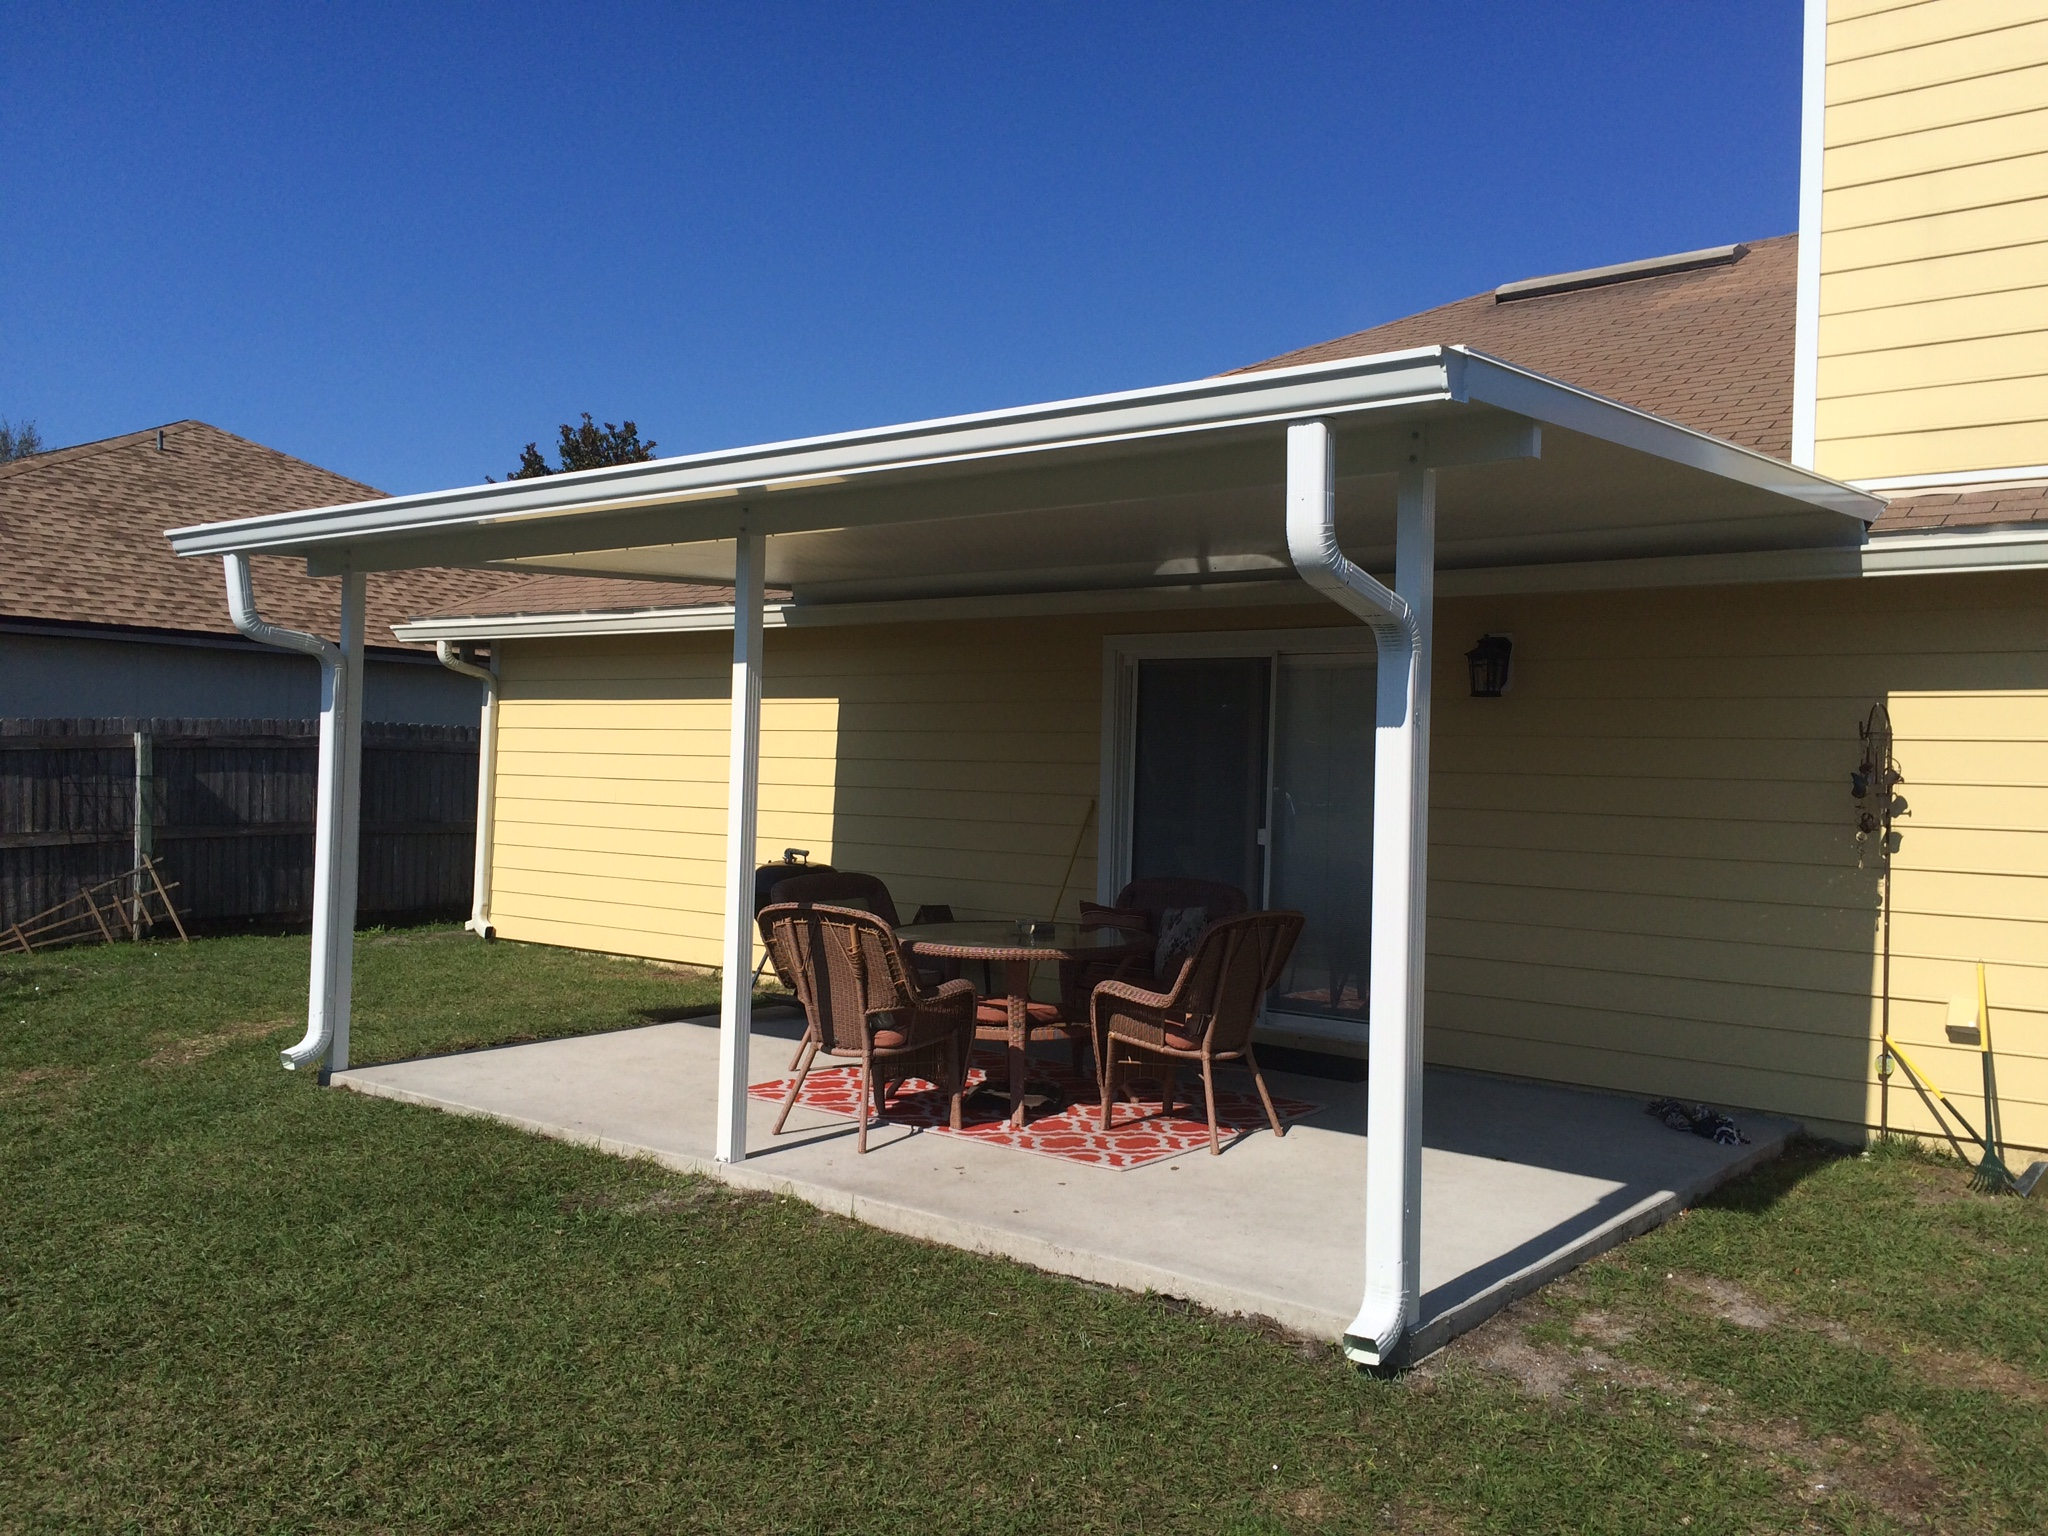 Patio covers carport roofs m daigle sons for Car patio covers